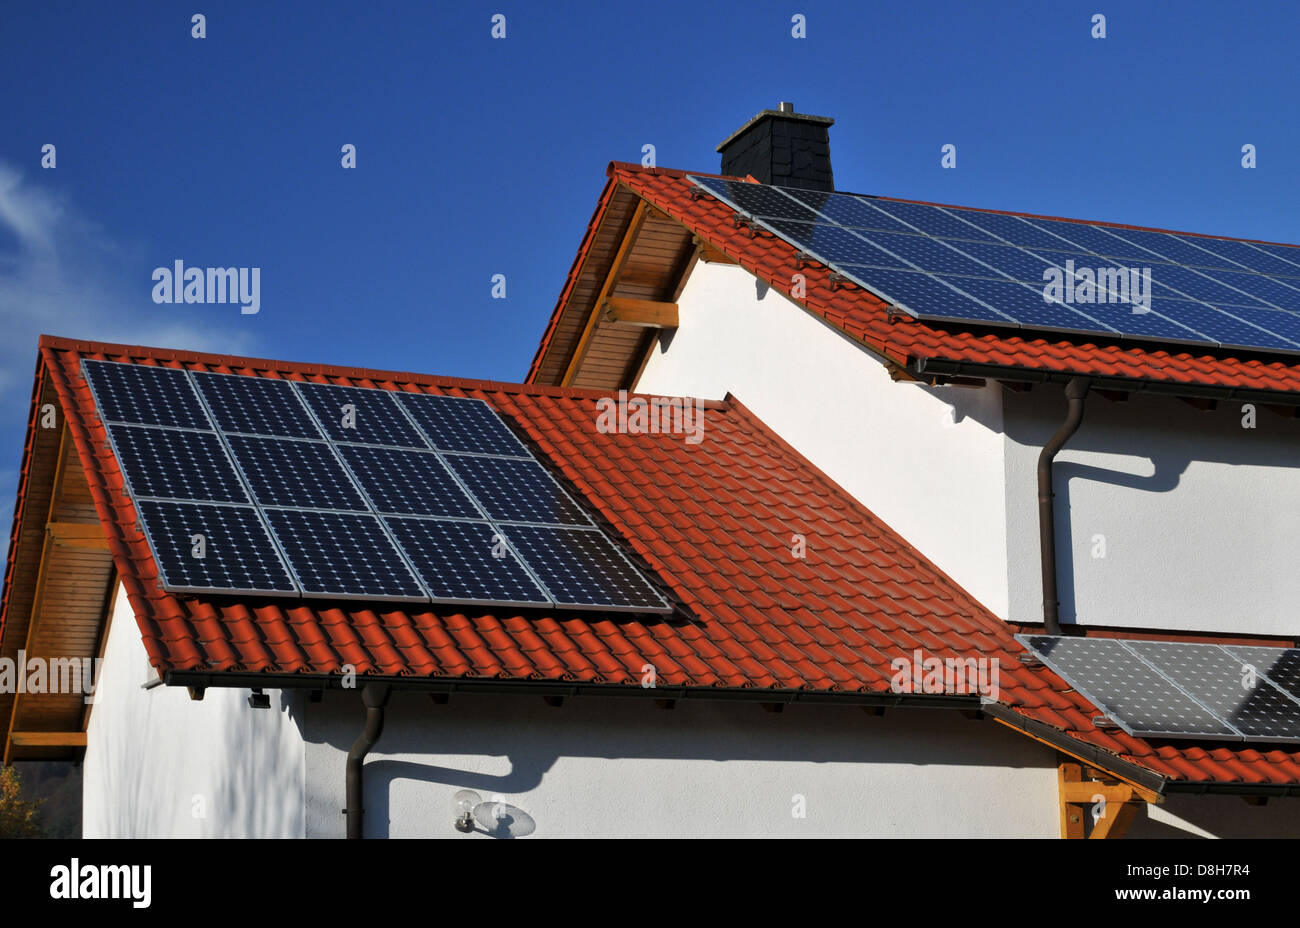 solar roof - Stock Image